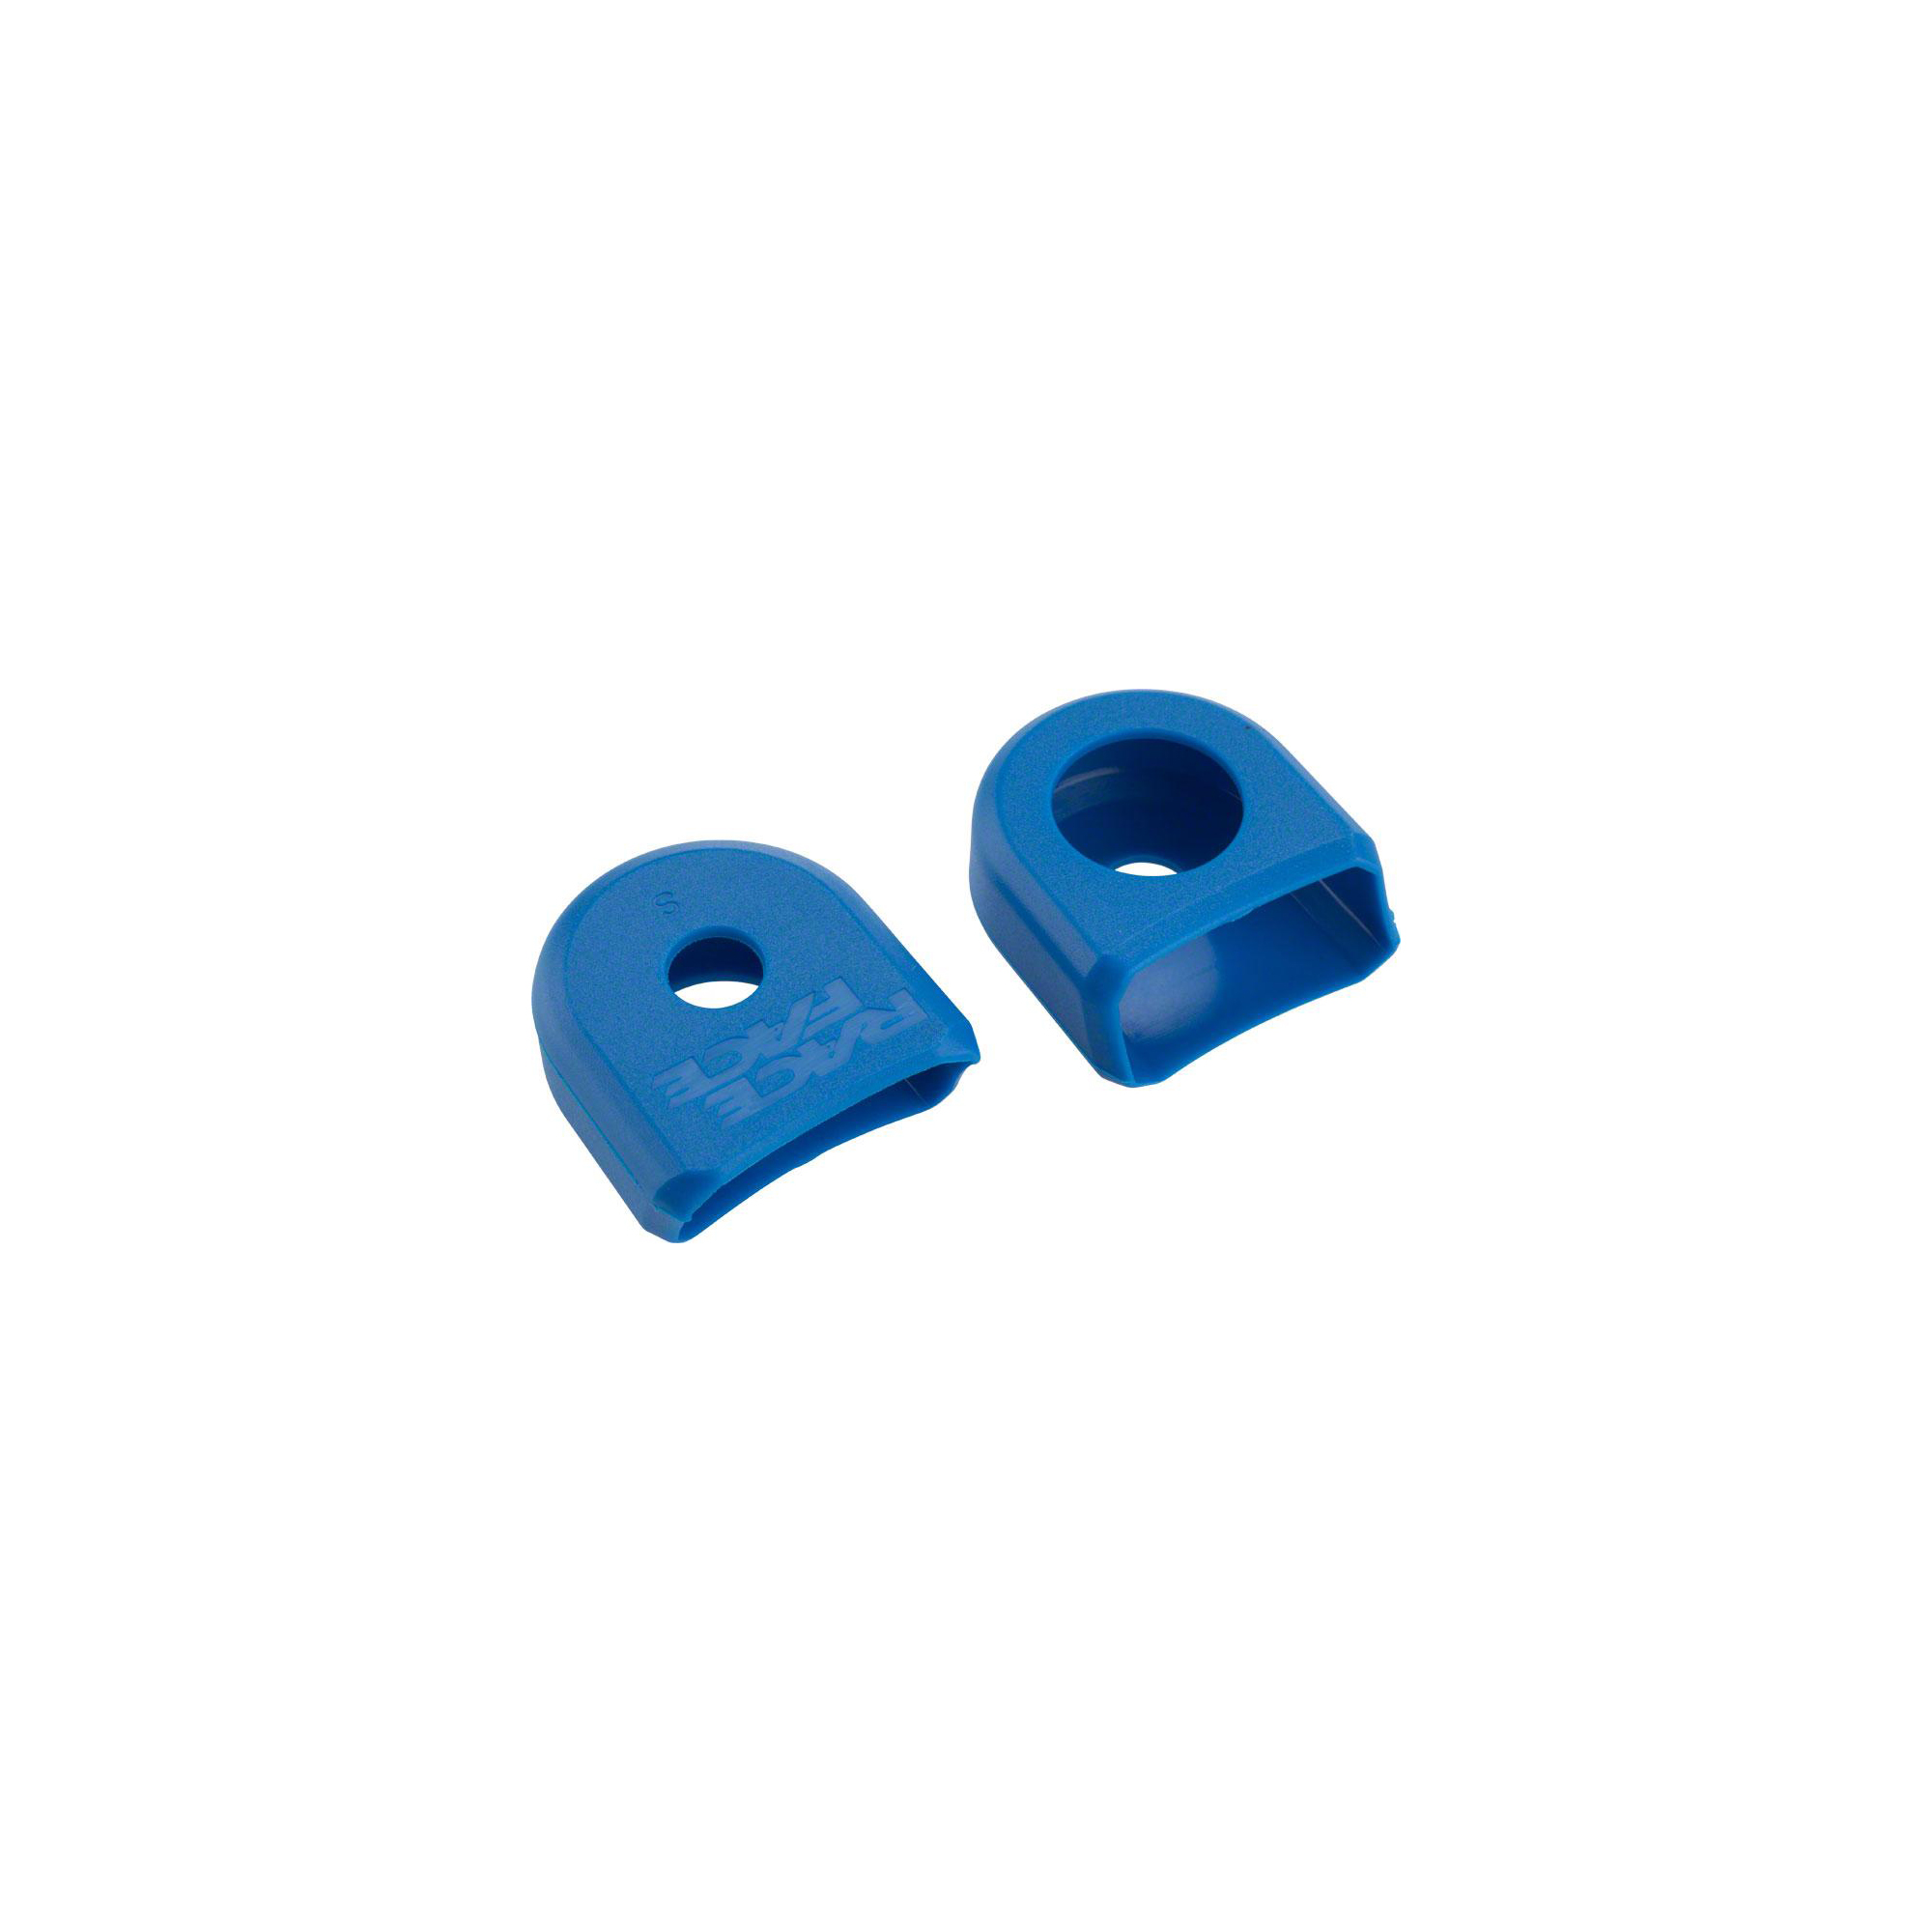 New Race Face Small Crank Boots 2-Pack Turquoise